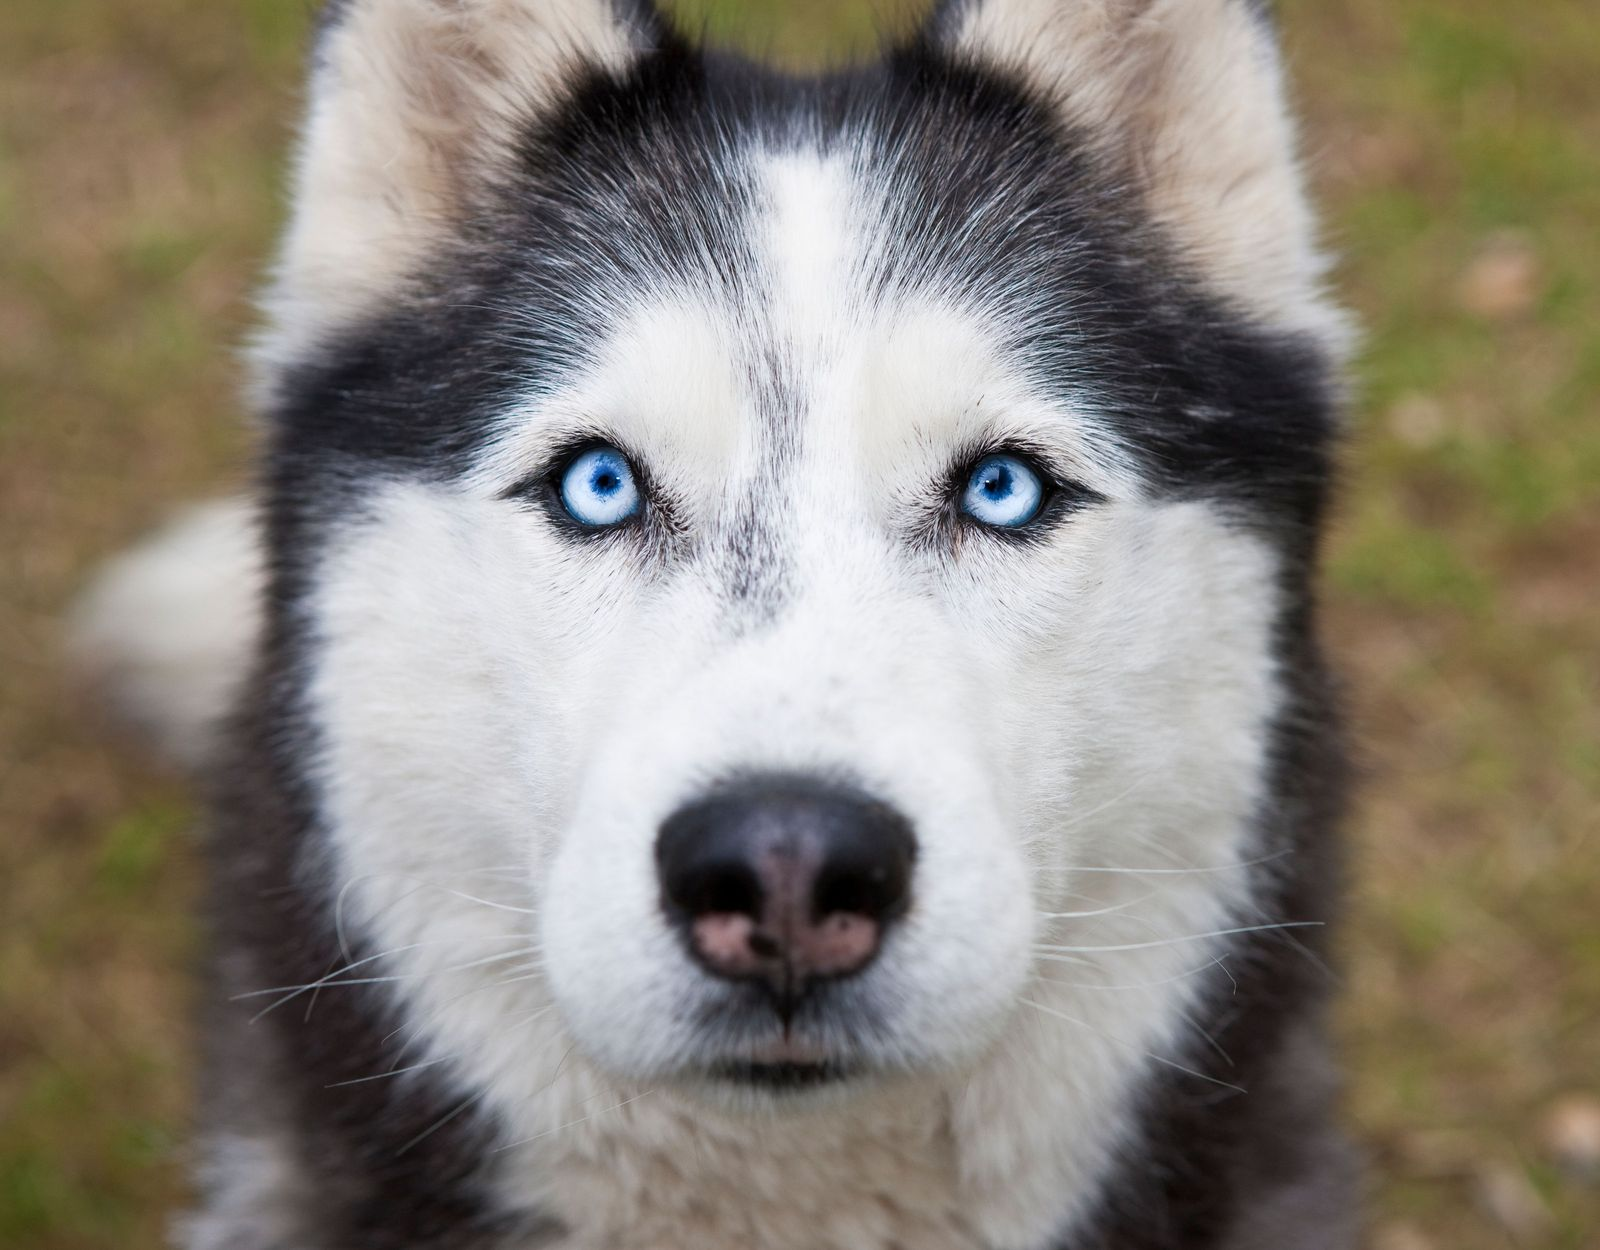 In Game of Thrones fans' pursuit of real-life dire wolves, huskies may pay the price